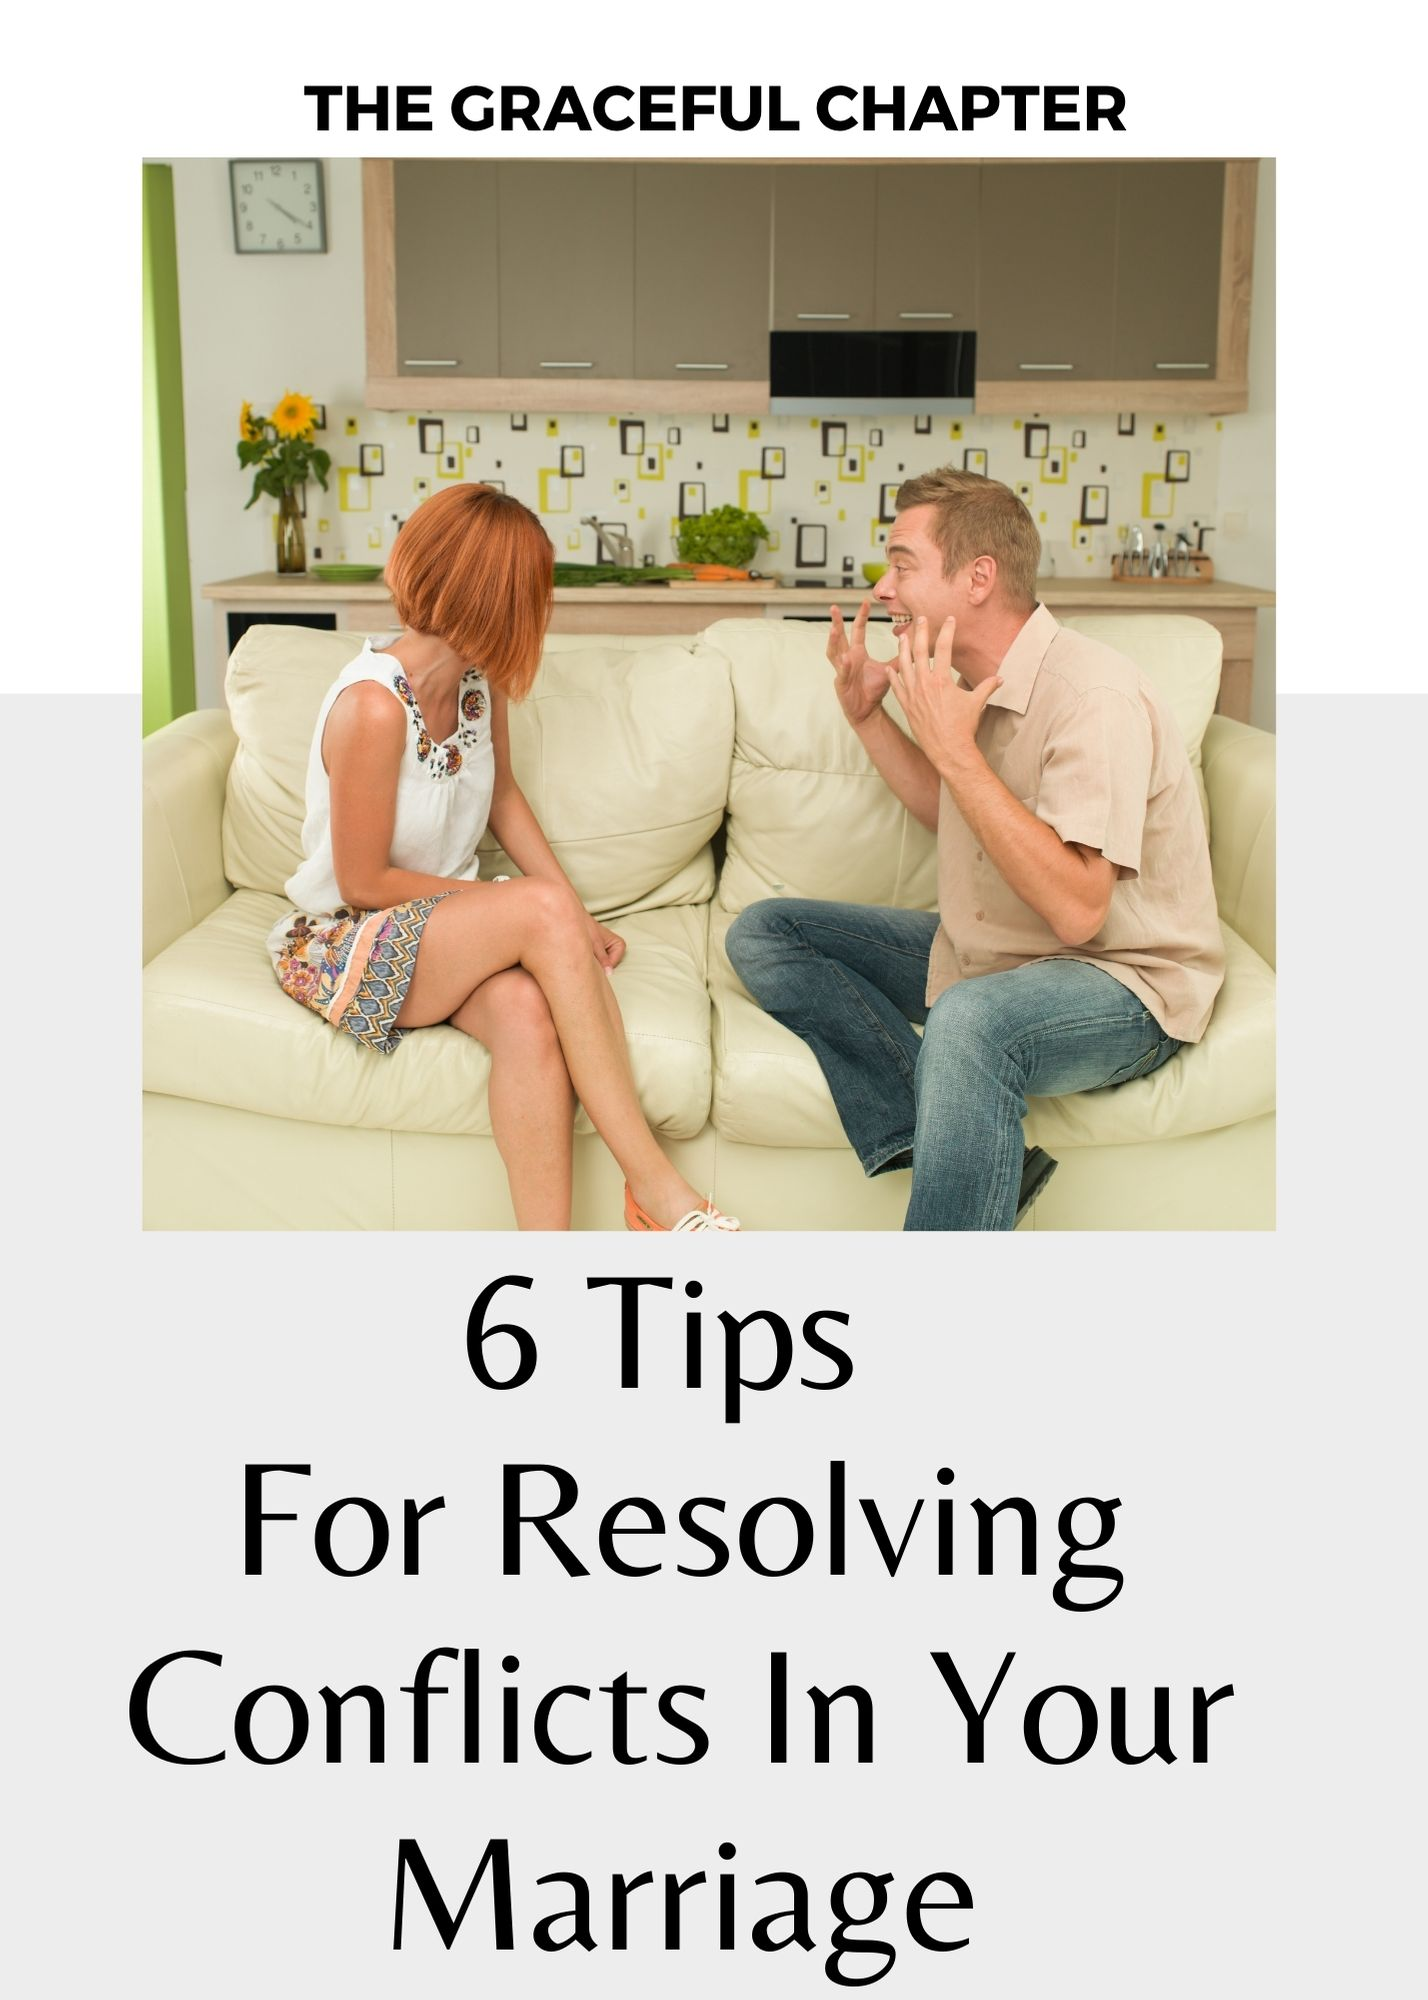 6 Tips for resolving conflicts in marriage